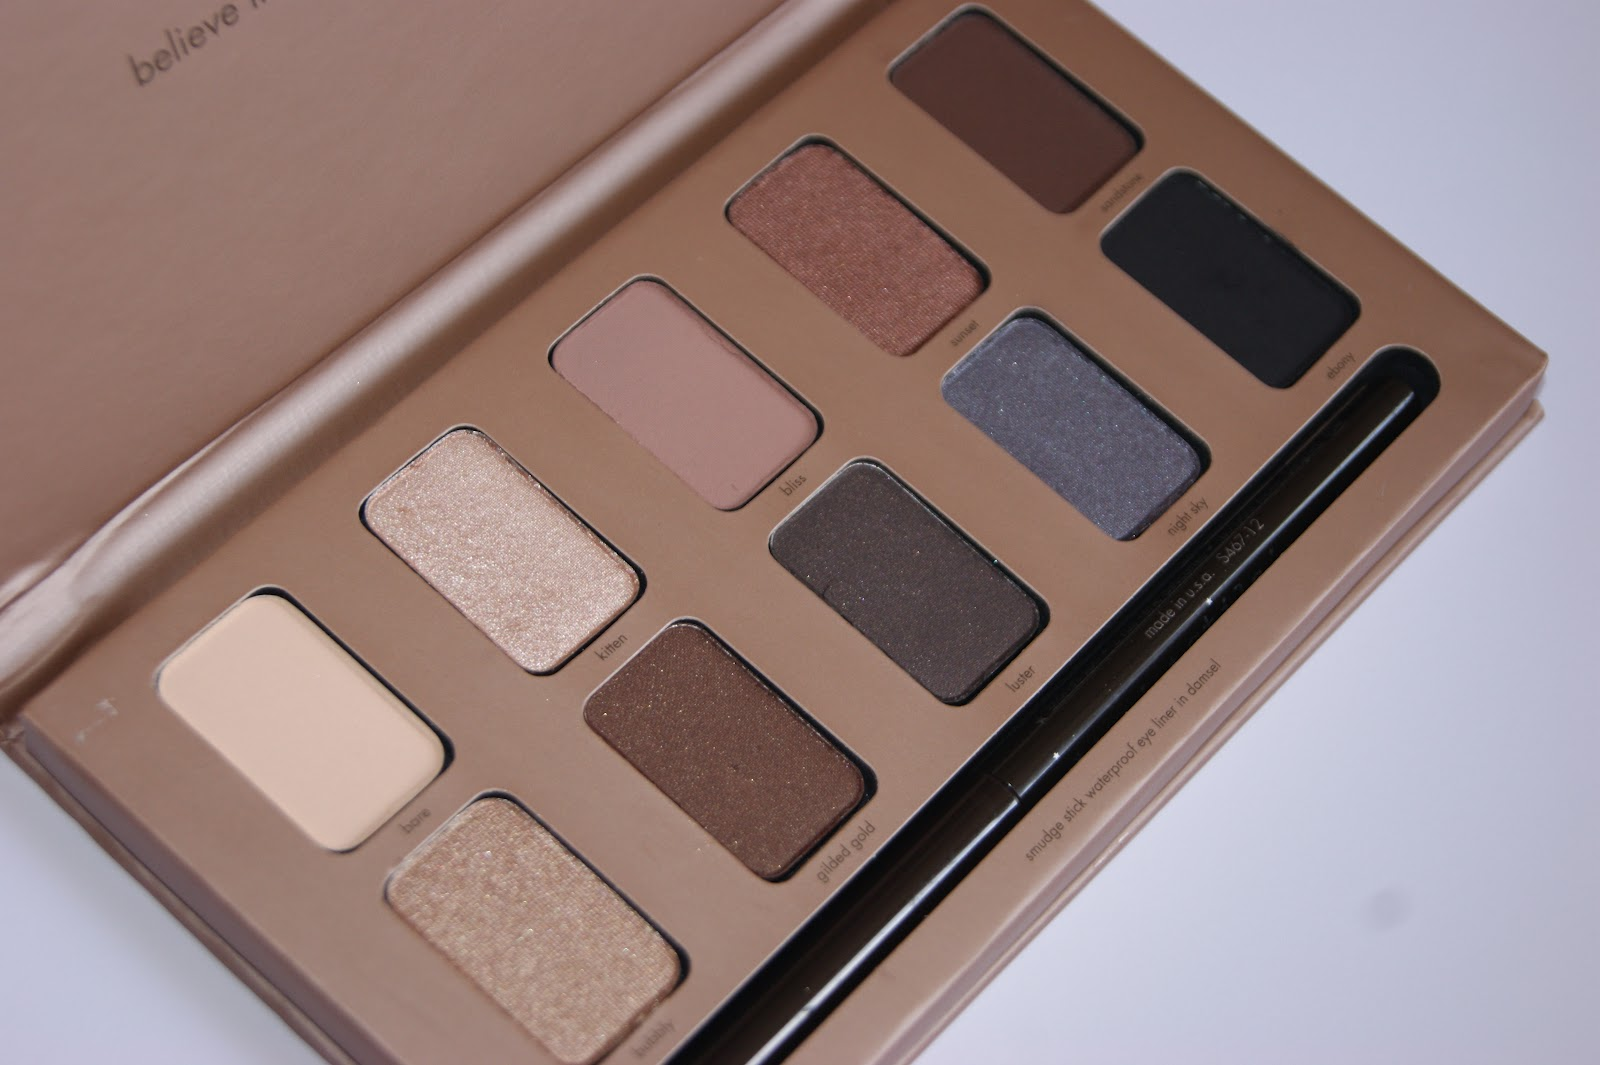 78f2195d731 As with most Stila products the packaging is very natural and minimalist in  style.